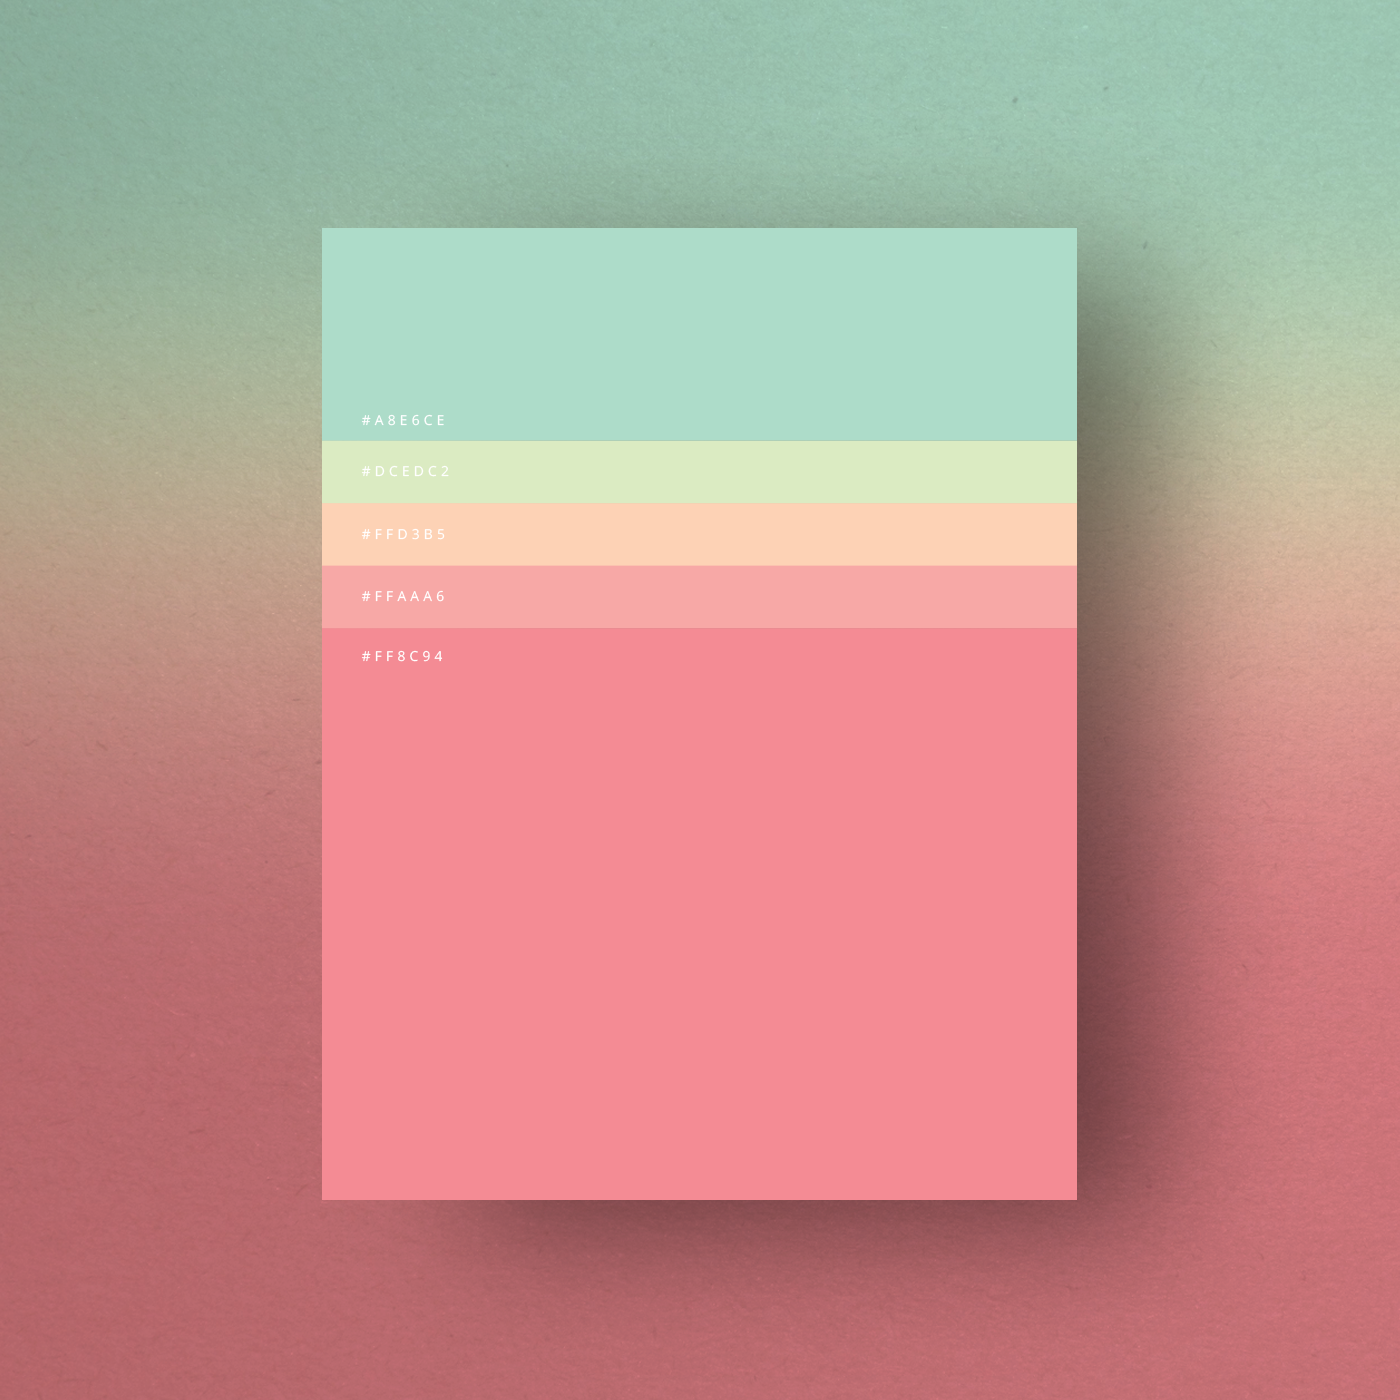 Minimal Web Color Palettes Combination With Hex Code 3